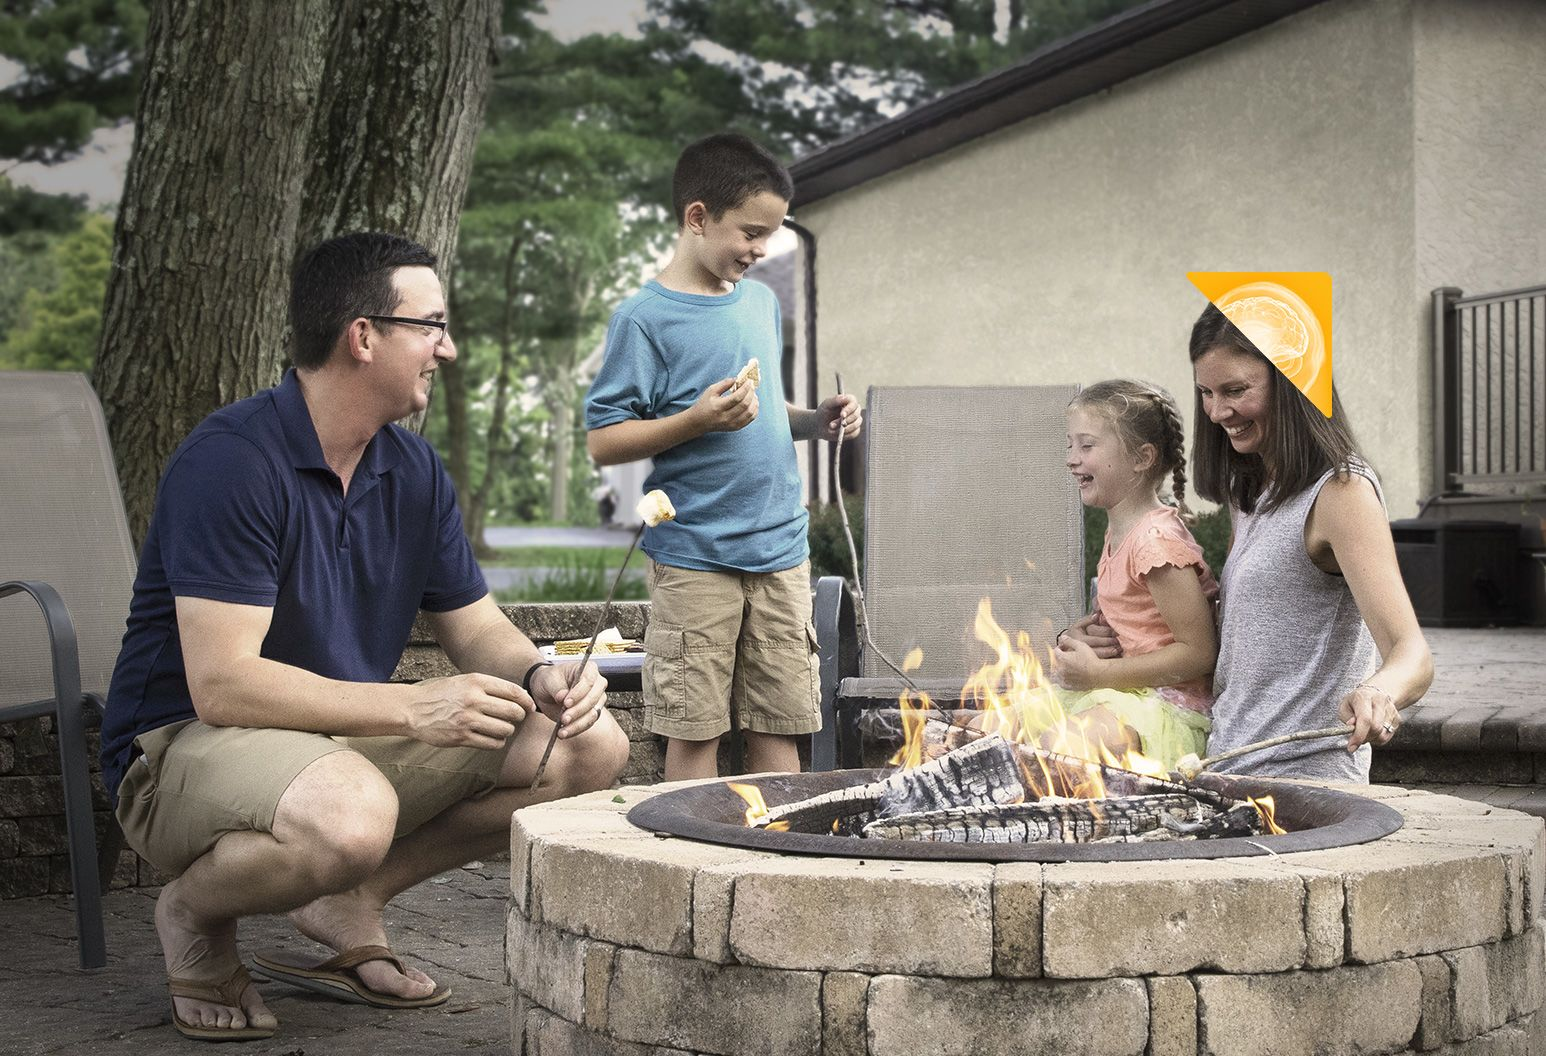 Kathy; an aneurysm survivor; and her family roasting smores outside of their home.